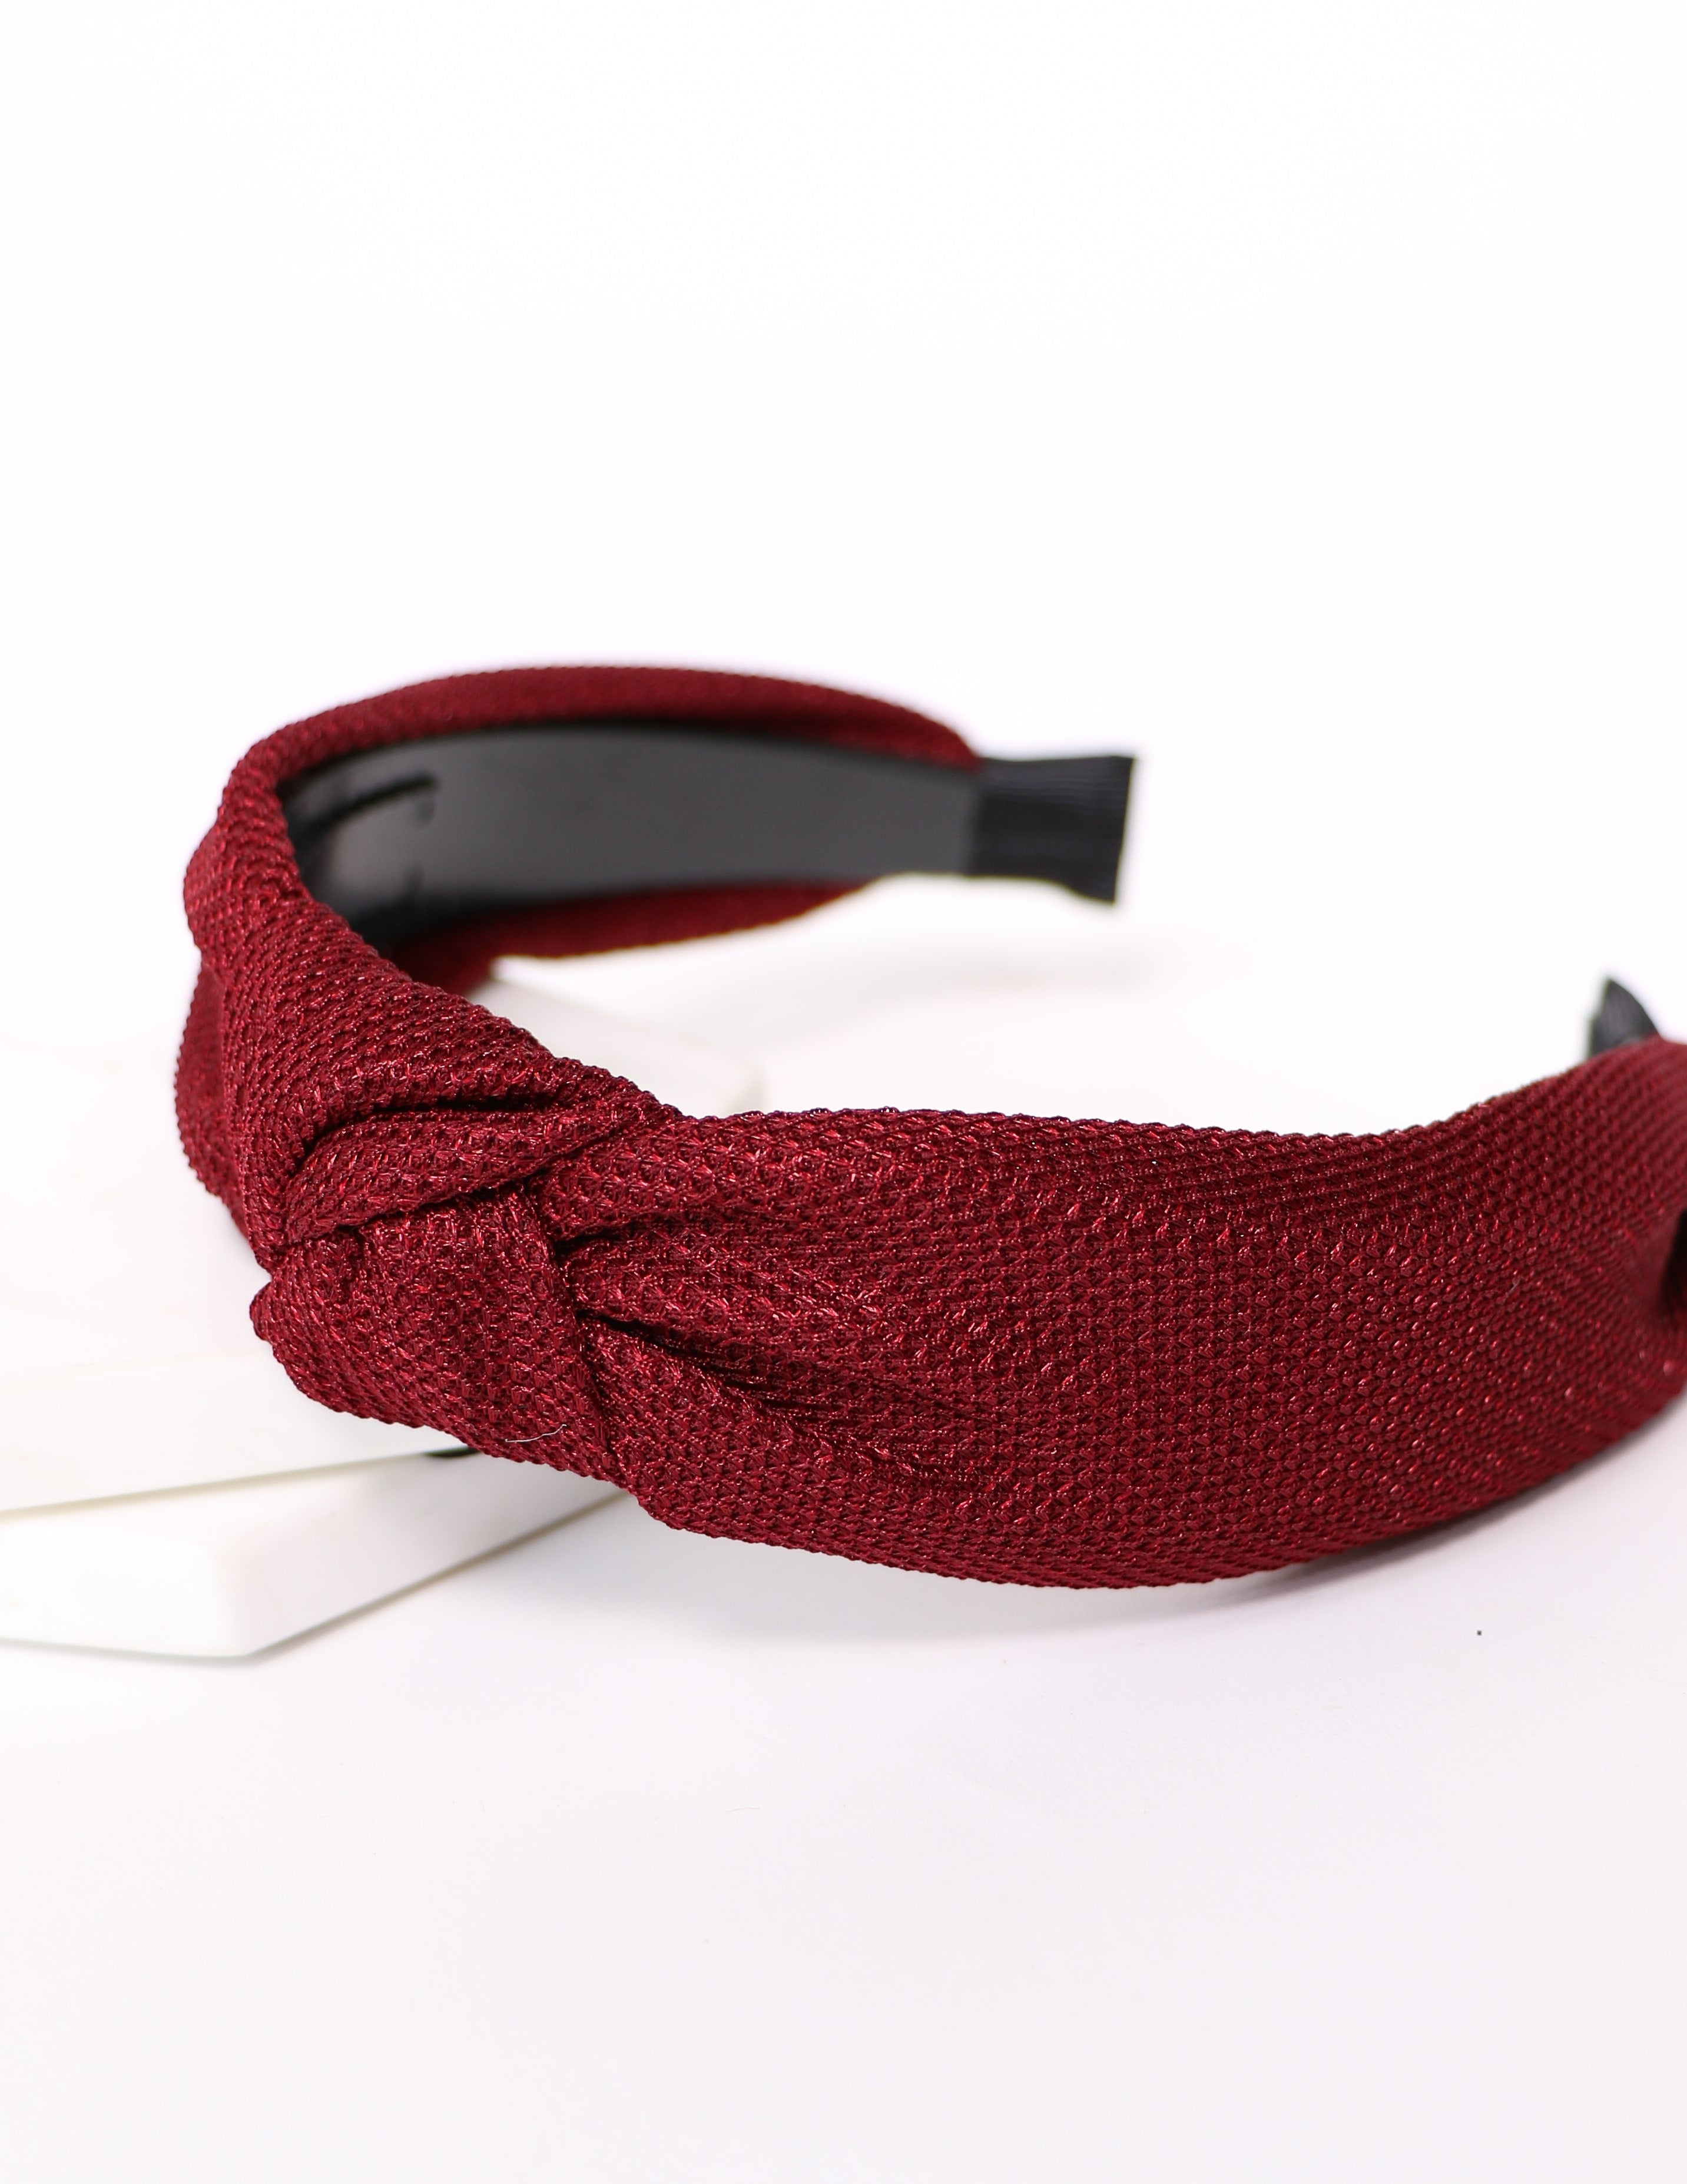 You know you love me burgundy woven headband - elle bleu